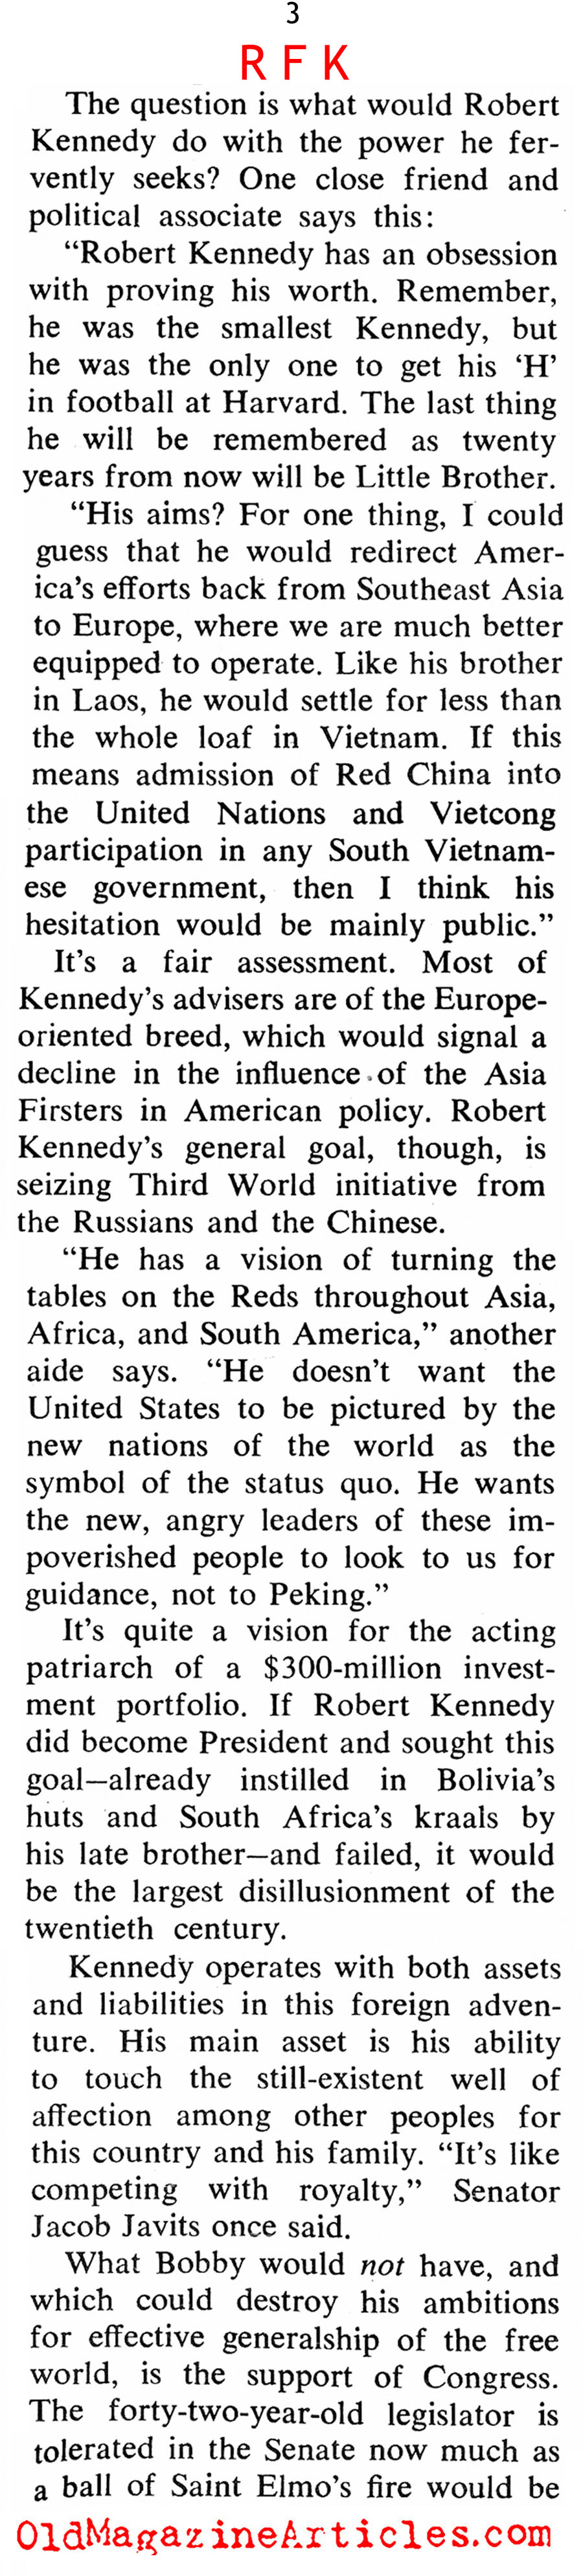 Anticipating A Robert Kennedy Presidency (Coronet Magazine, 1968)